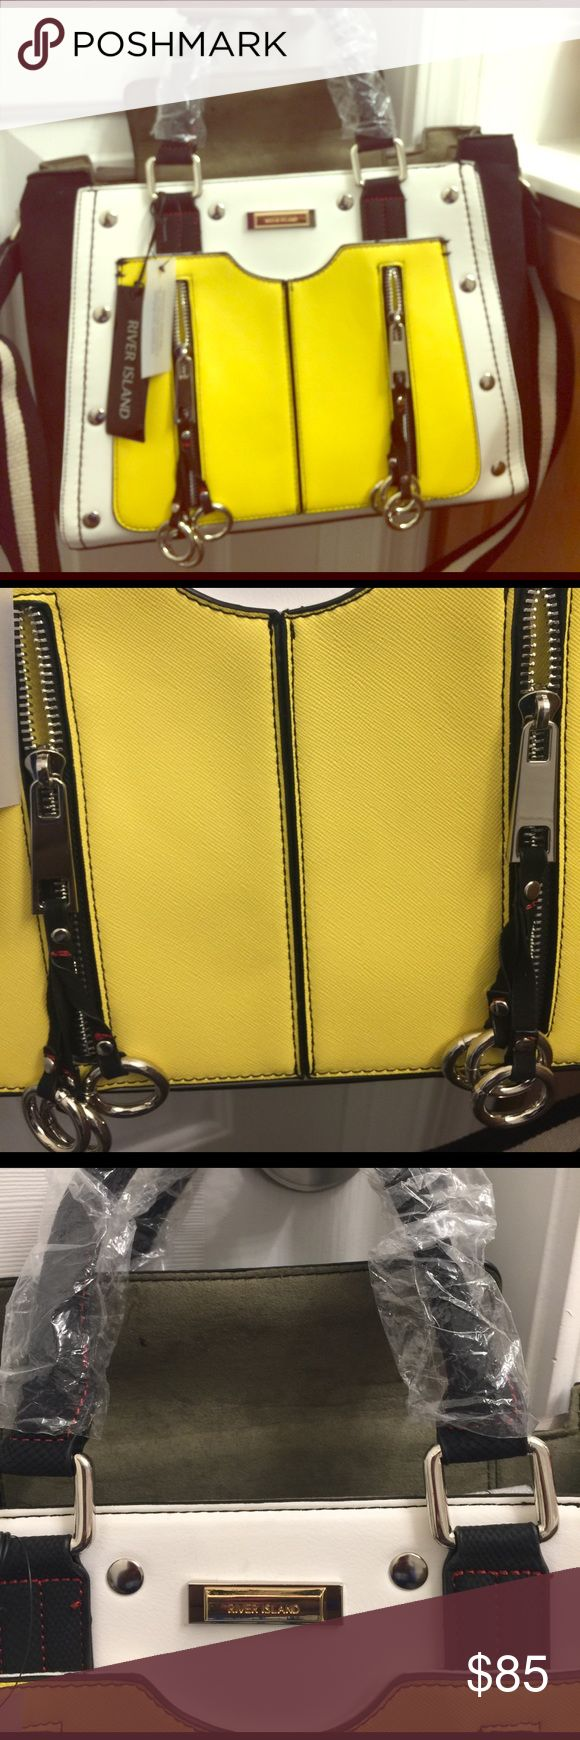 River island tote Beautiful, colorful tote from river island. River Island Bags Totes